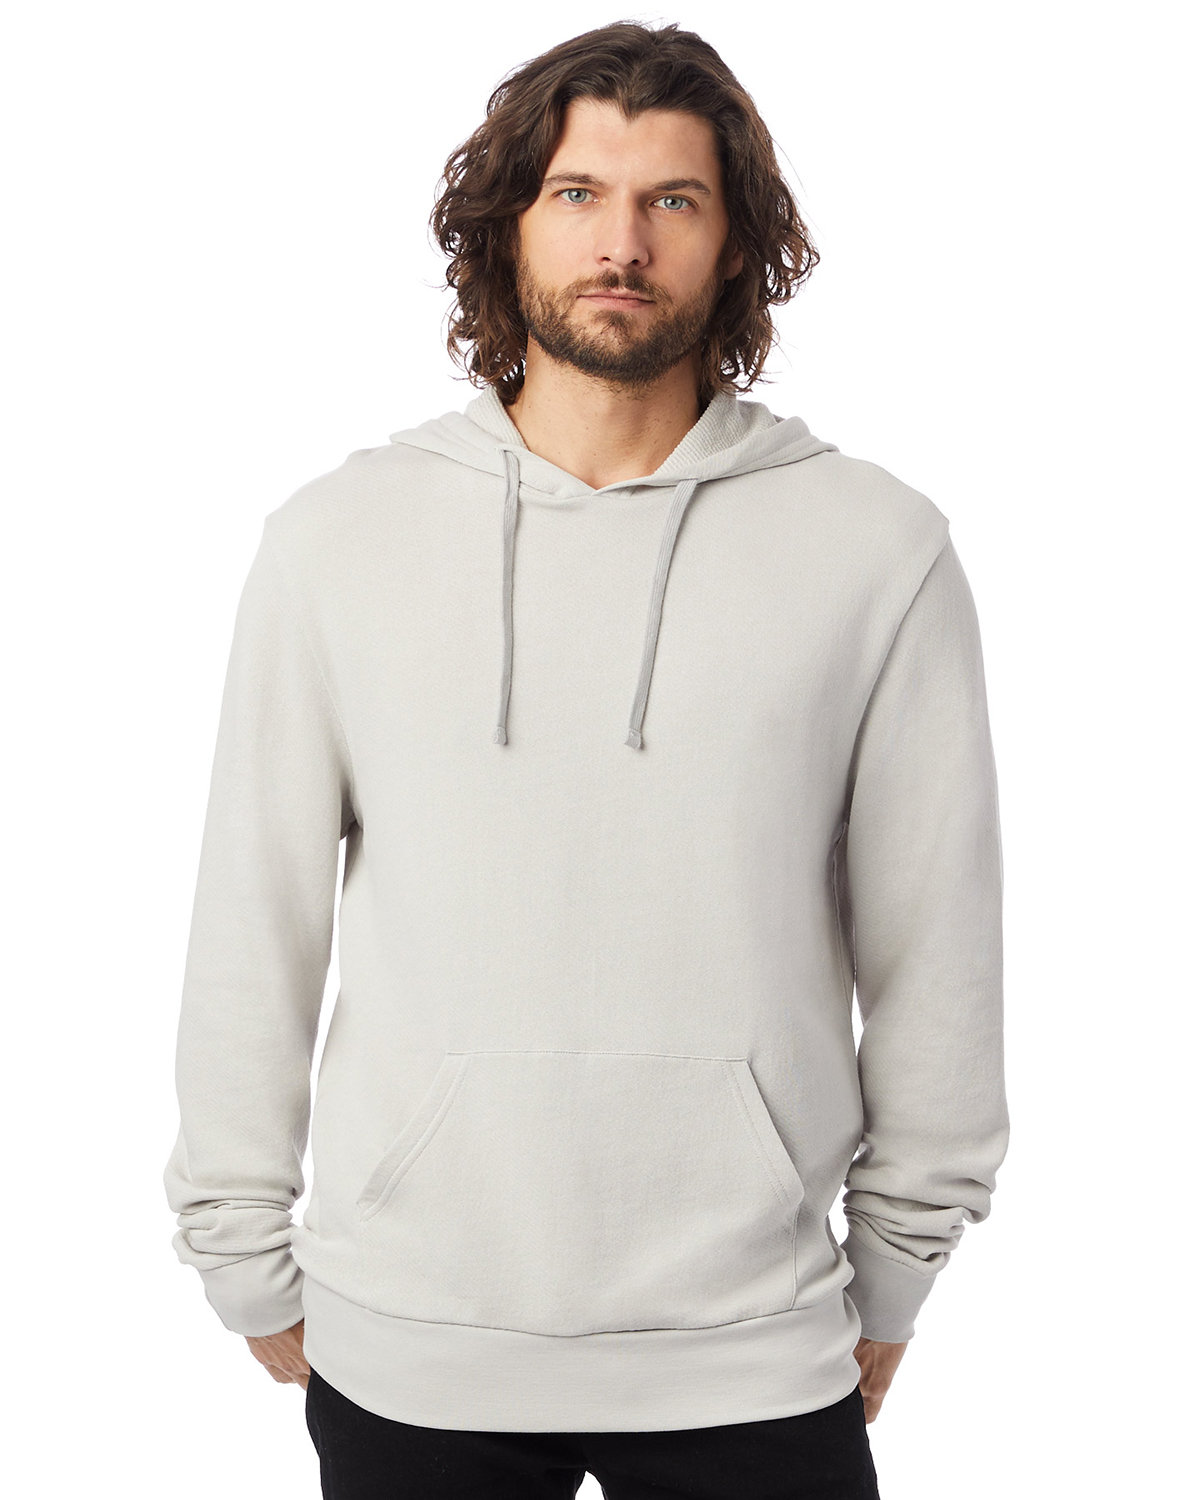 Alternative Unisex 6.5 oz., Challenger Washed French Terry Pullover Hooded Sweatshirt LIGHT GREY